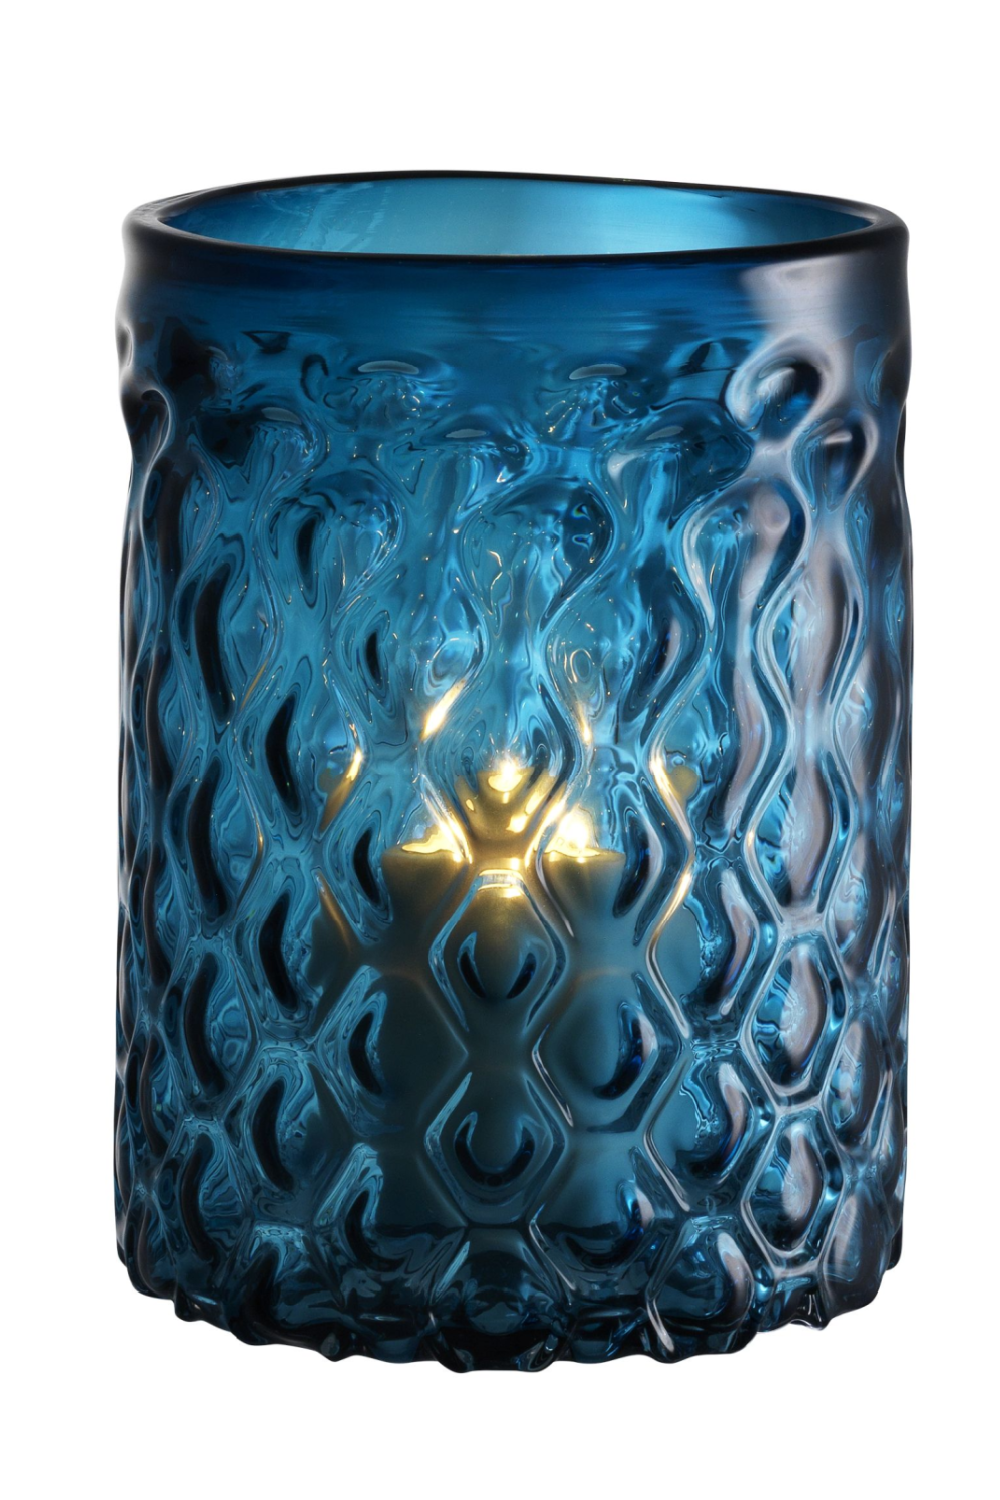 Blue Glass Hurricane - S | Eichholtz Aquila | OROA Modern Luxury Decor